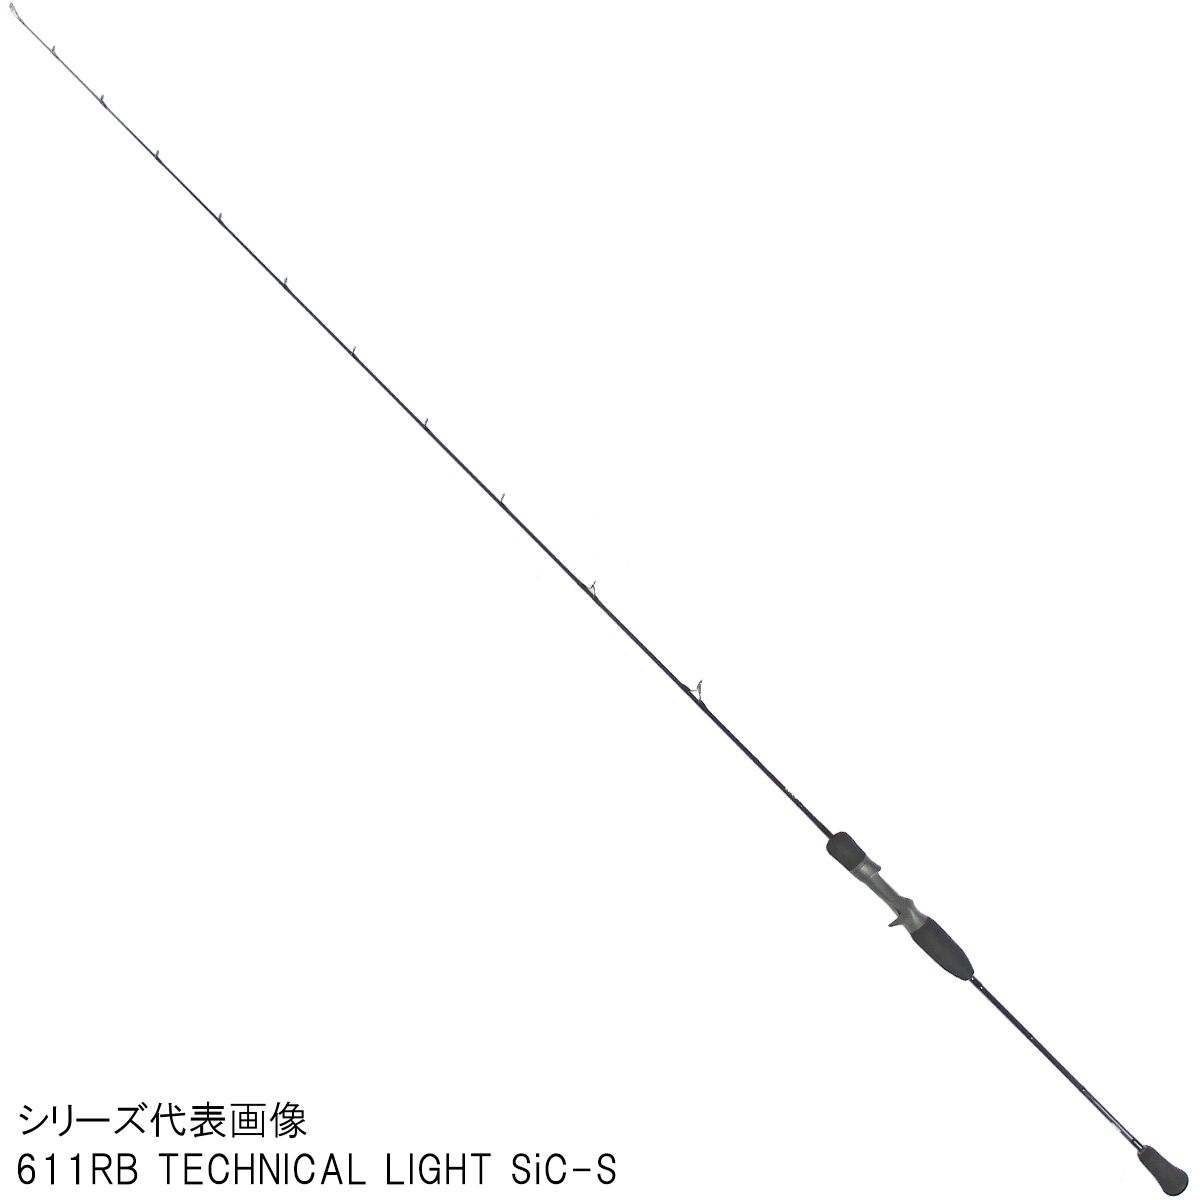 SSR Rigid 613RB TECHNICAL LIGHT SiC-S【大型商品】